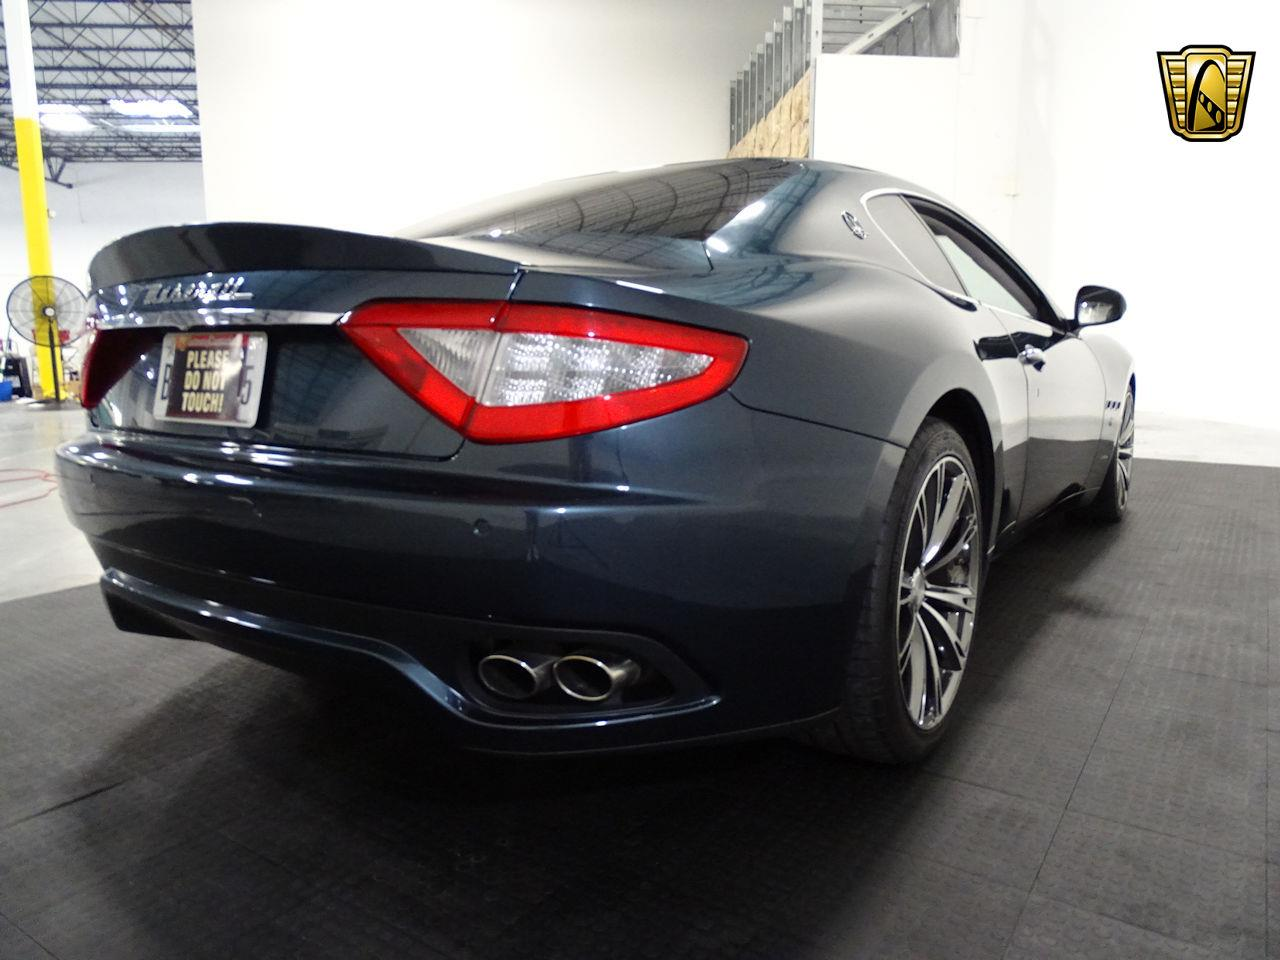 Large Picture of 2008 GranTurismo Offered by Gateway Classic Cars - Houston - MO4H